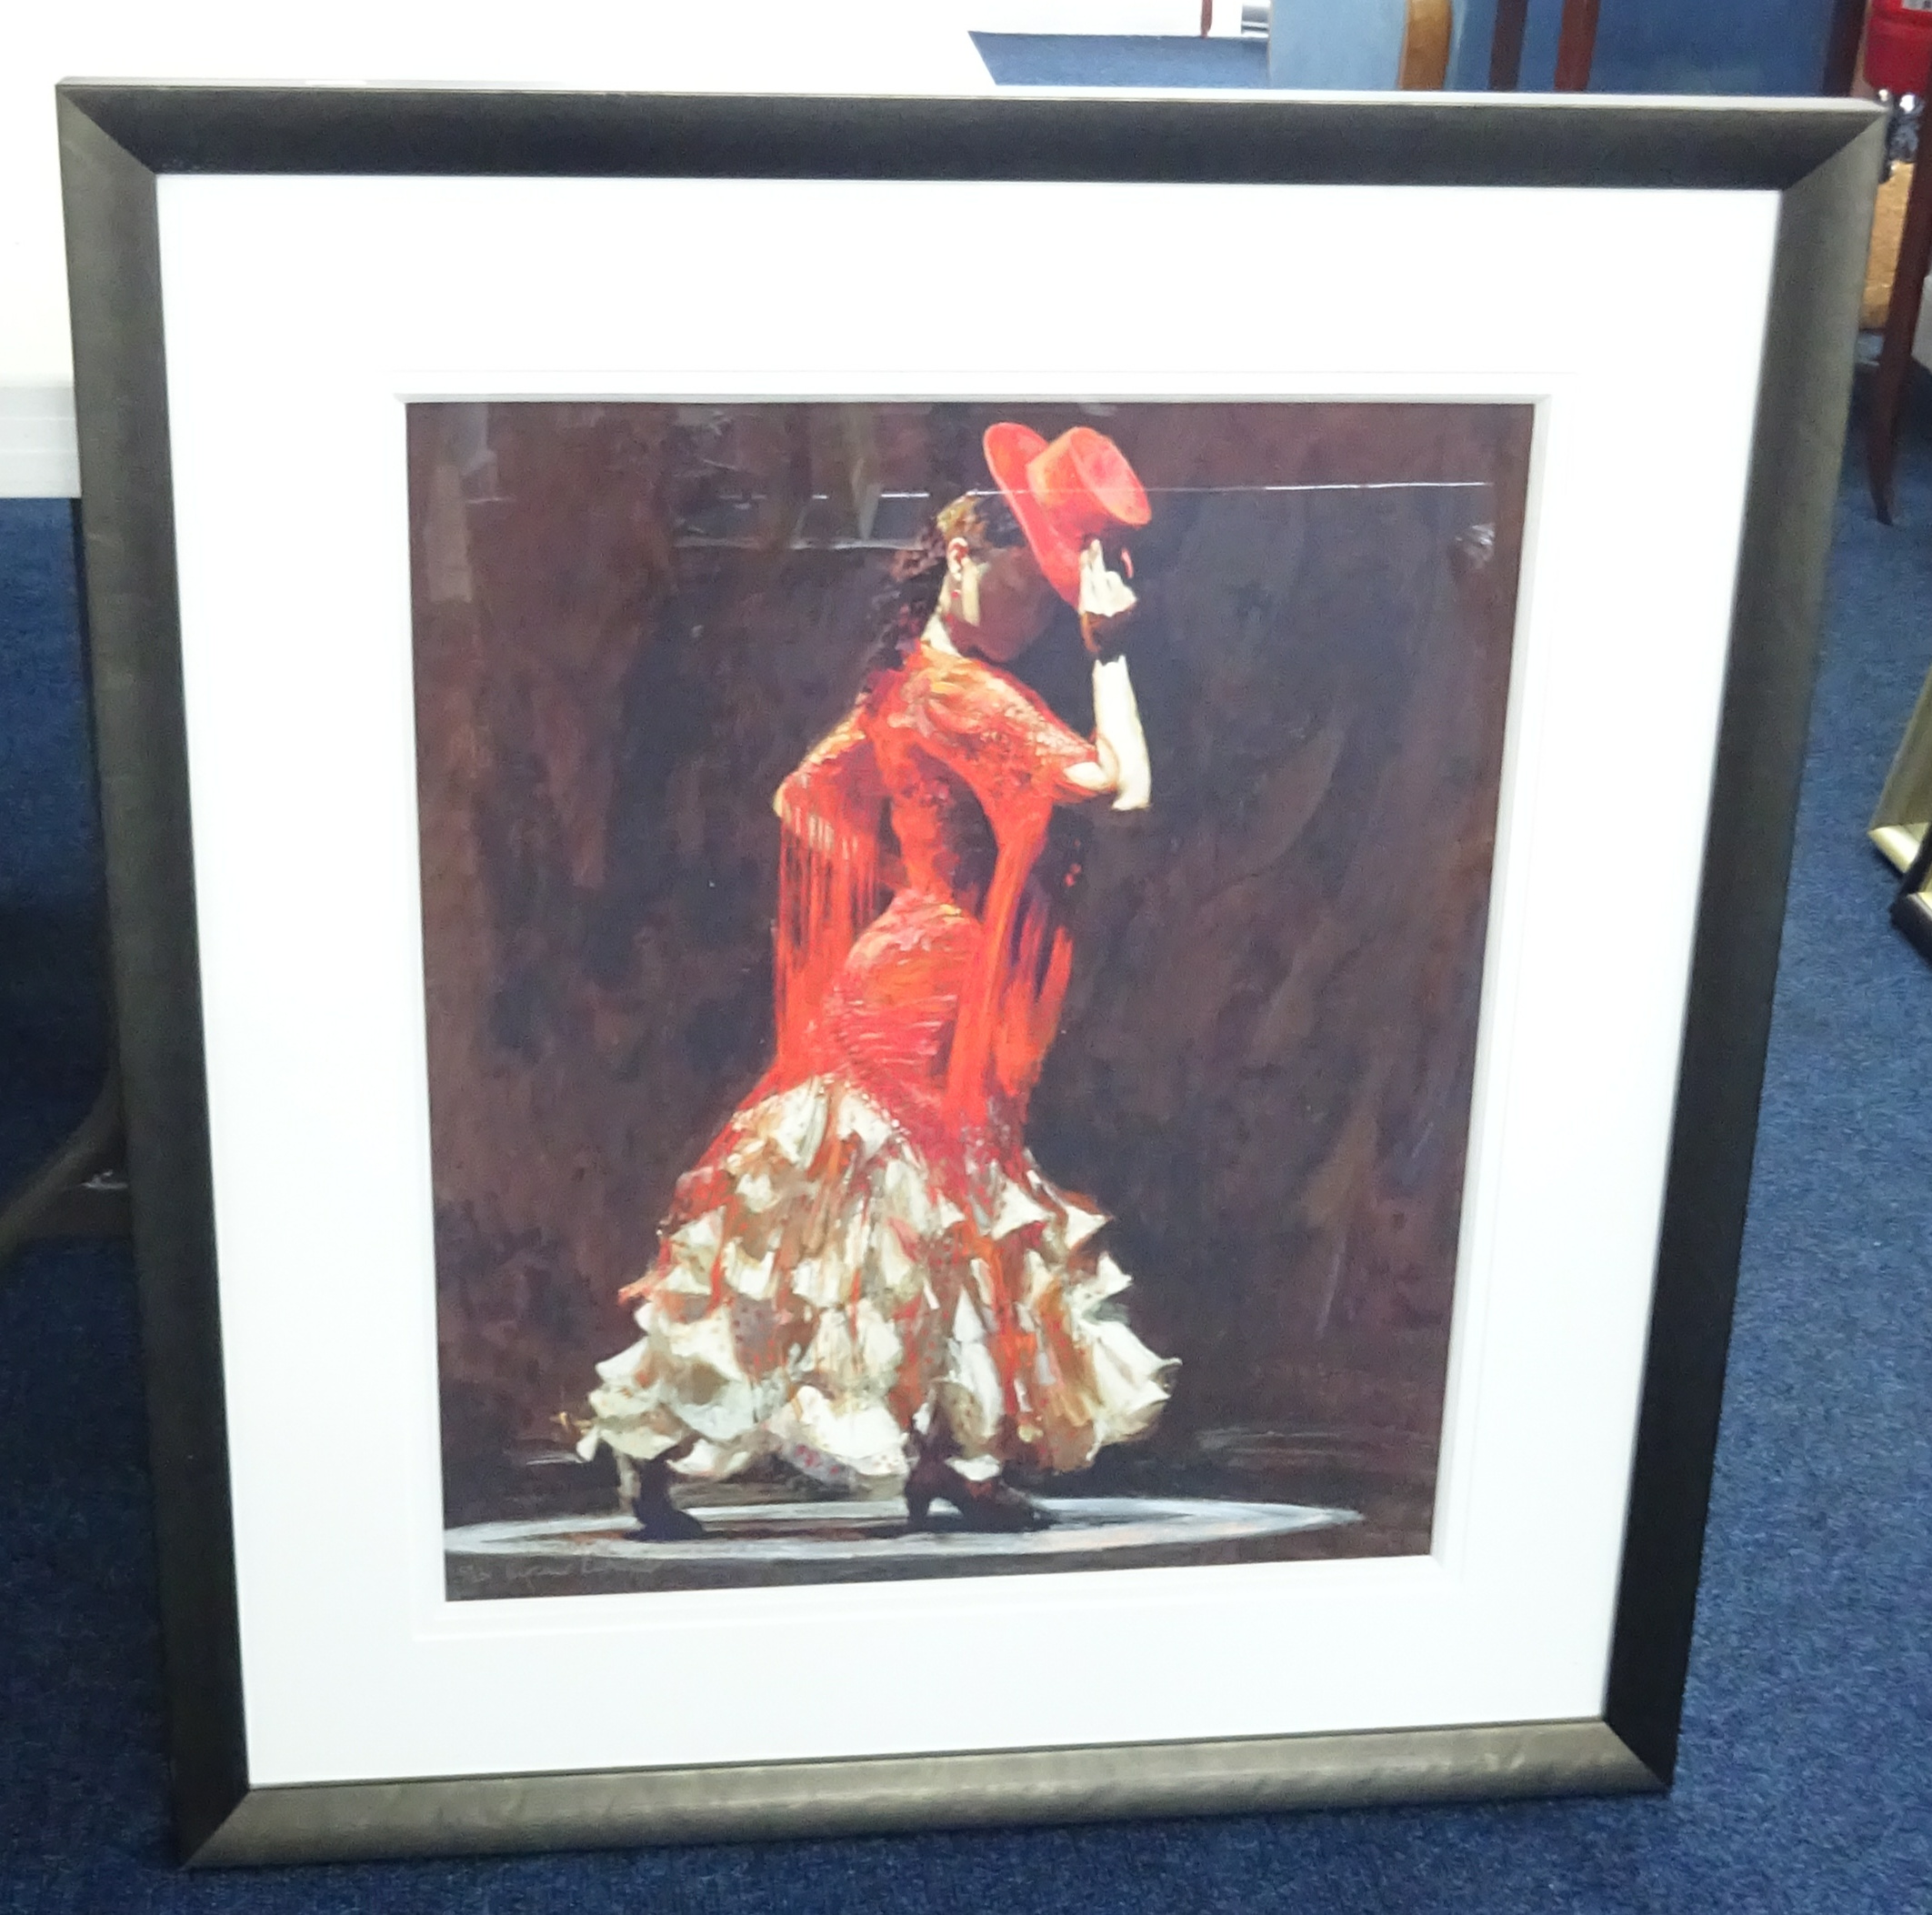 Lot 025 - Fletcher contemporary print titled 'Beauty in the Shadows', framed and glazed.